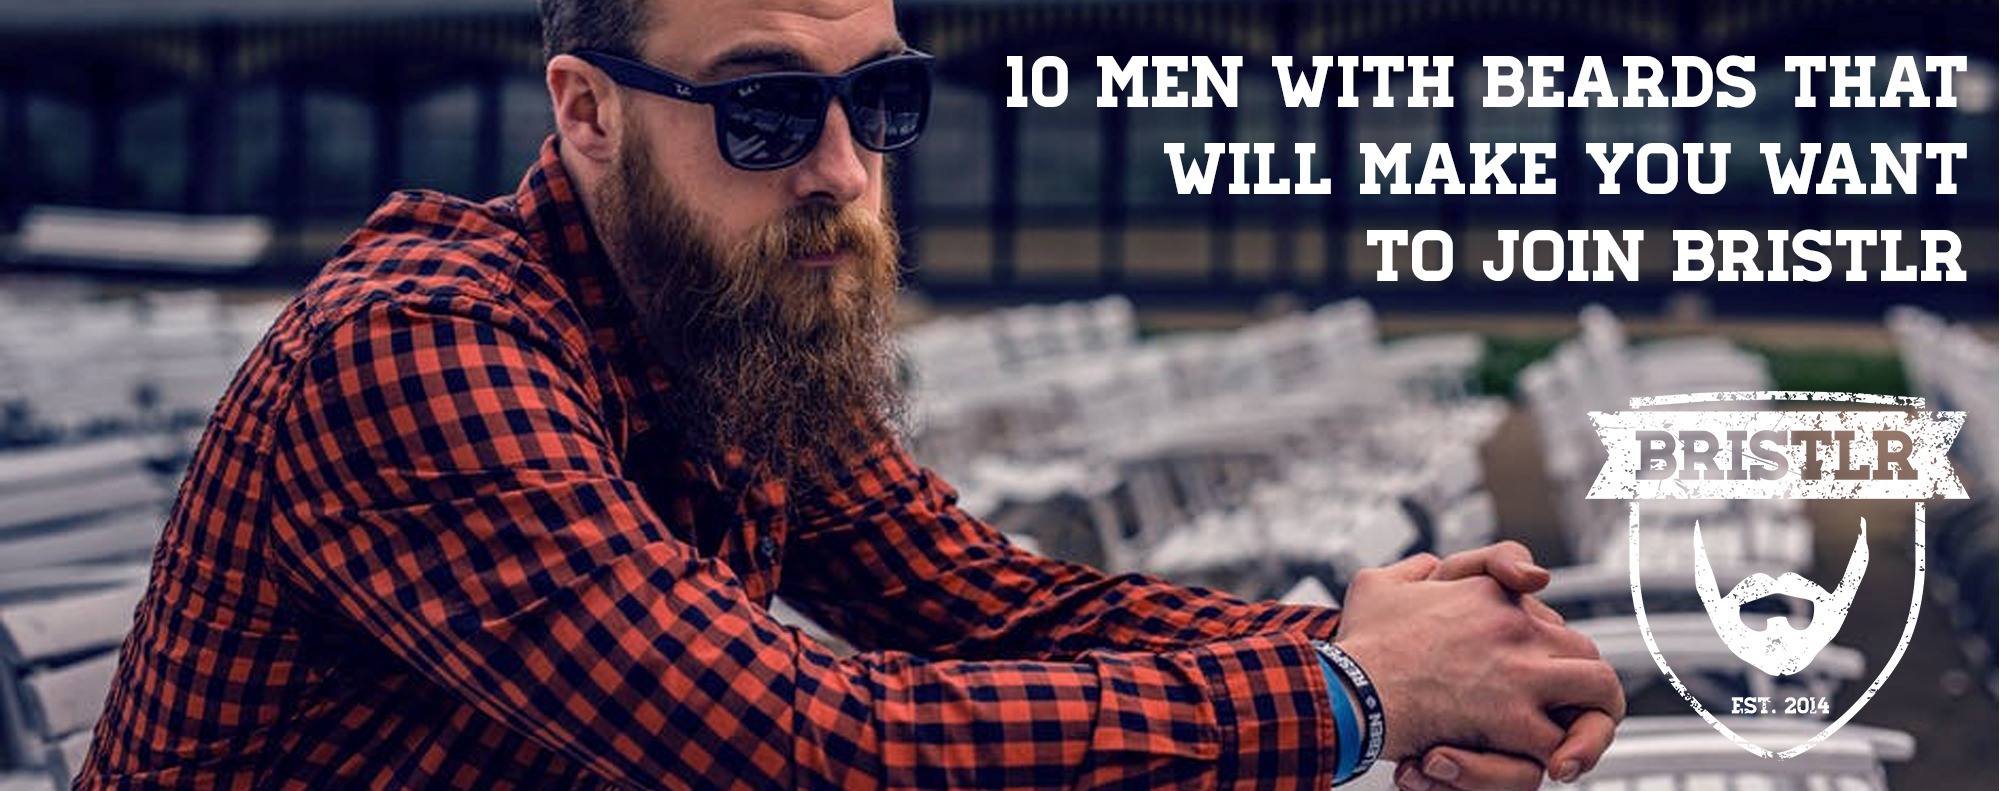 10 Men with Beards that will make you want to join Bristlr